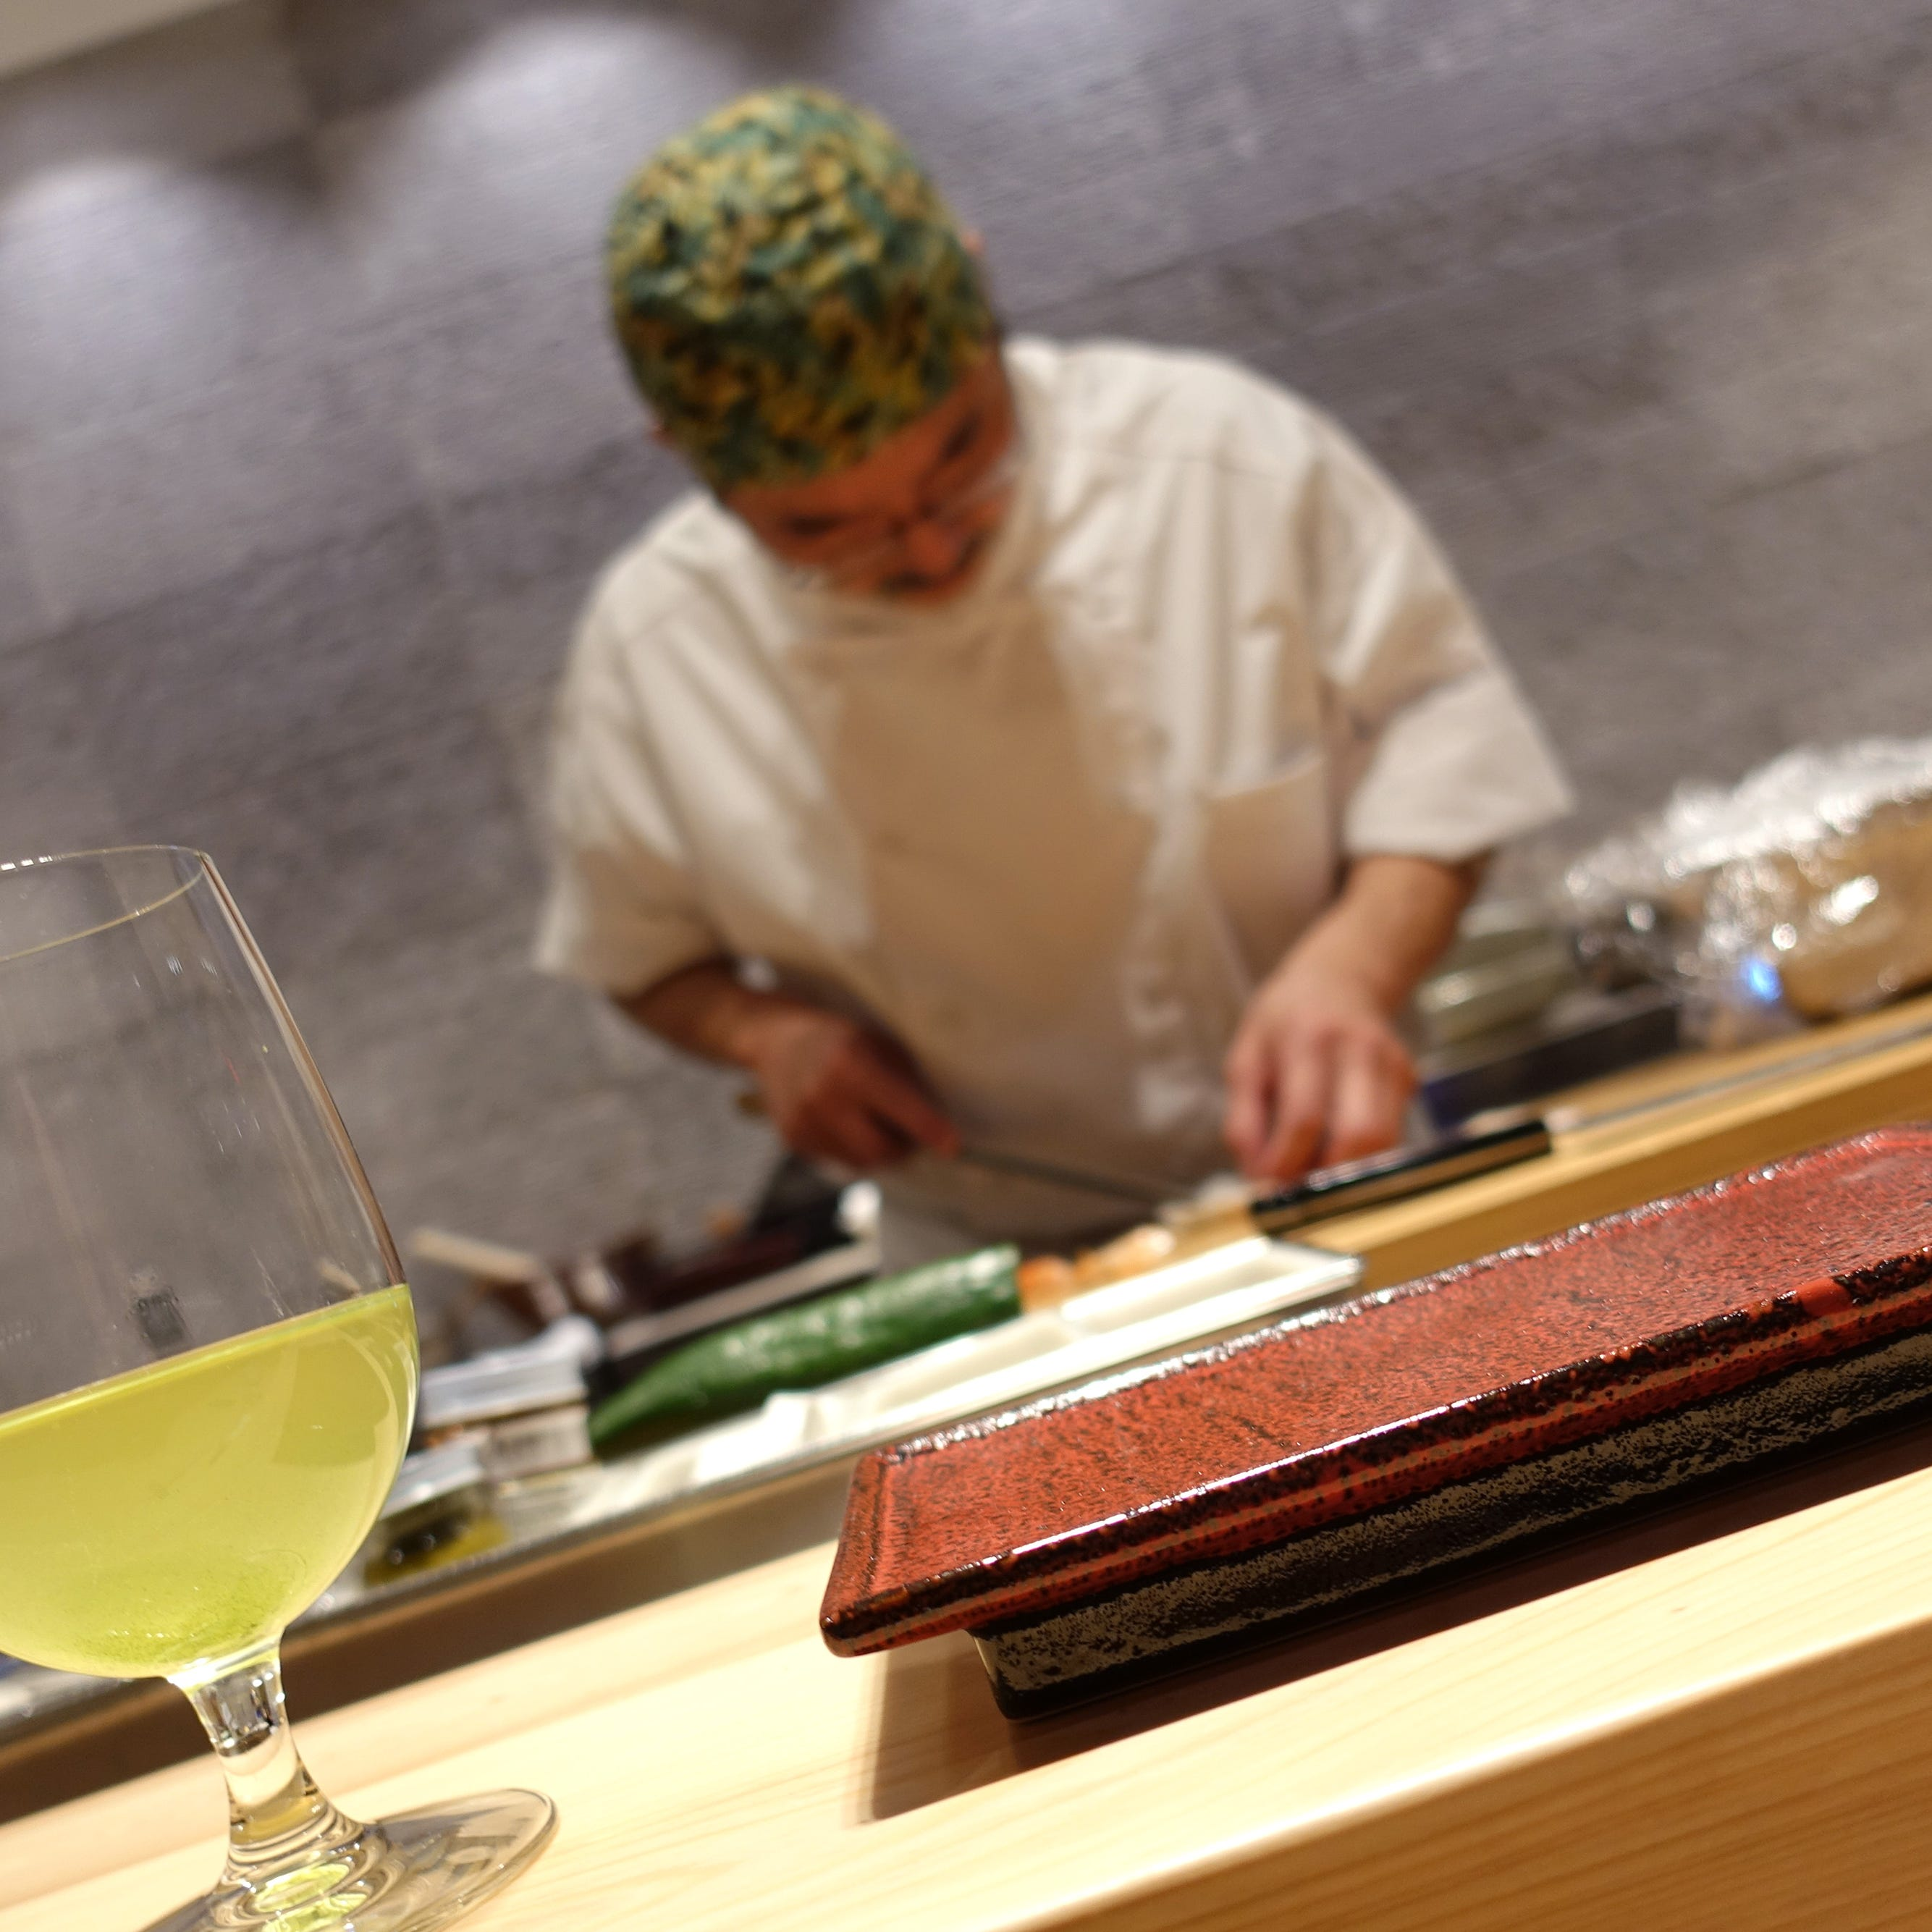 ShinBay is back. Will the third time be the charm for the high-end Japanese restaurant?